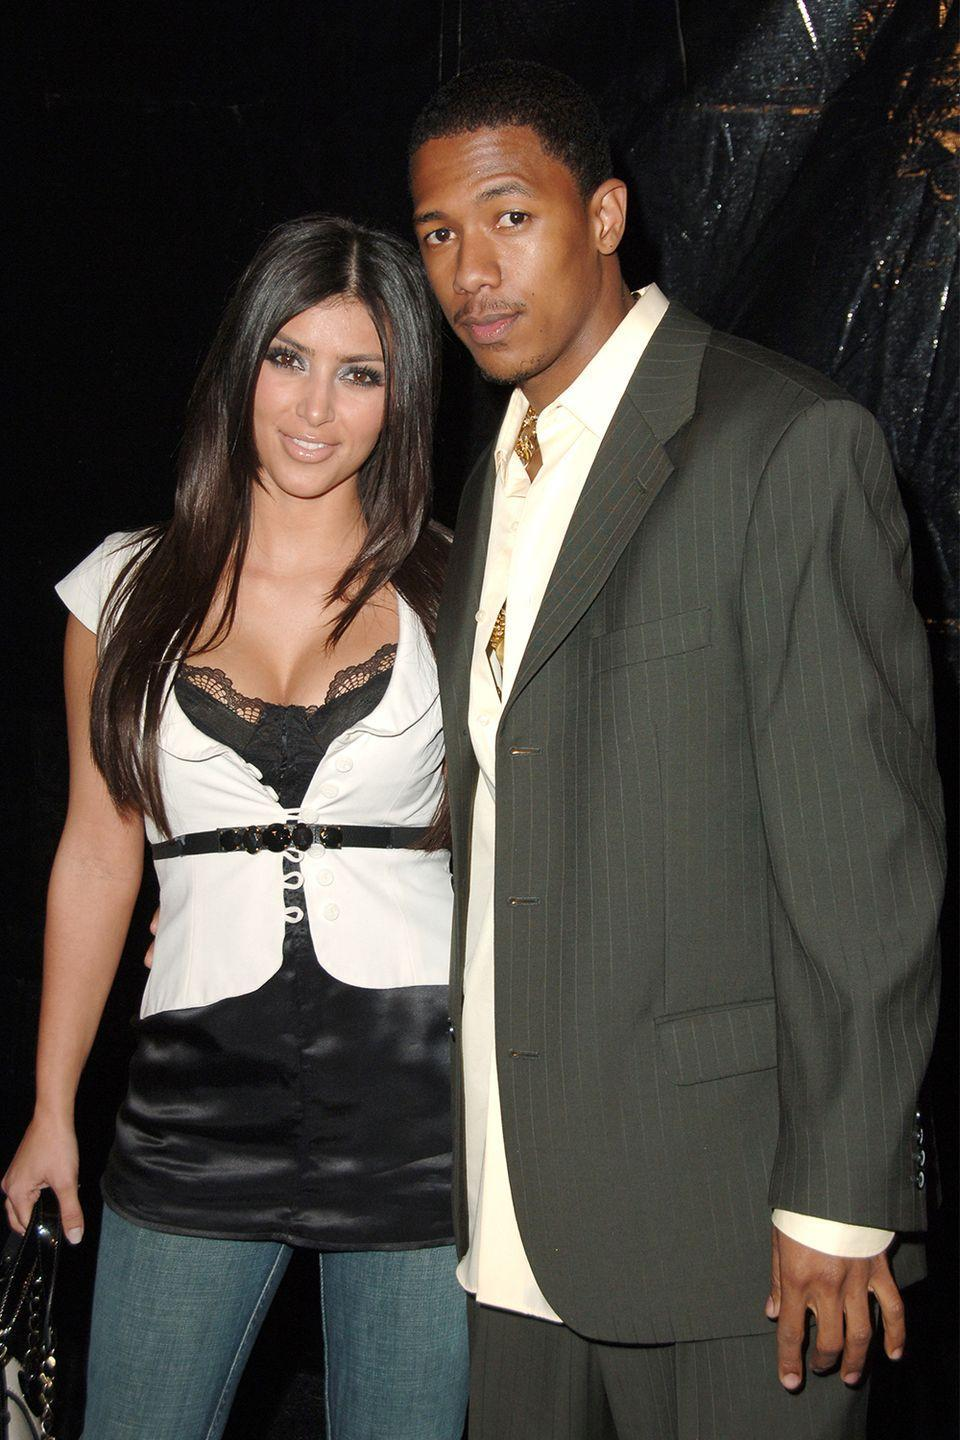 """<p>Lest you forget: <a href=""""https://www.usmagazine.com/celebrity-news/news/nick-cannon-reminds-us-he-dated-kim-kardashian-w462007/"""" rel=""""nofollow noopener"""" target=""""_blank"""" data-ylk=""""slk:Kim Kardashian and Nick Cannon dated"""" class=""""link rapid-noclick-resp"""">Kim Kardashian and Nick Cannon dated</a> back in the early 2000s. The pair allegedly split after Kim's sex tap with Ray J. surfaced. Cannon went on to marry Mariah Carey in 2008, but the scandal affected him so much so that he and his now-ex-wife <a href=""""https://www.marieclaire.com/culture/g19792227/celebrities-that-didnt-have-sex-before-marriage/"""" rel=""""nofollow noopener"""" target=""""_blank"""" data-ylk=""""slk:decided not to have sex before tying the knot"""" class=""""link rapid-noclick-resp"""">decided not to have sex before tying the knot</a>. </p>"""